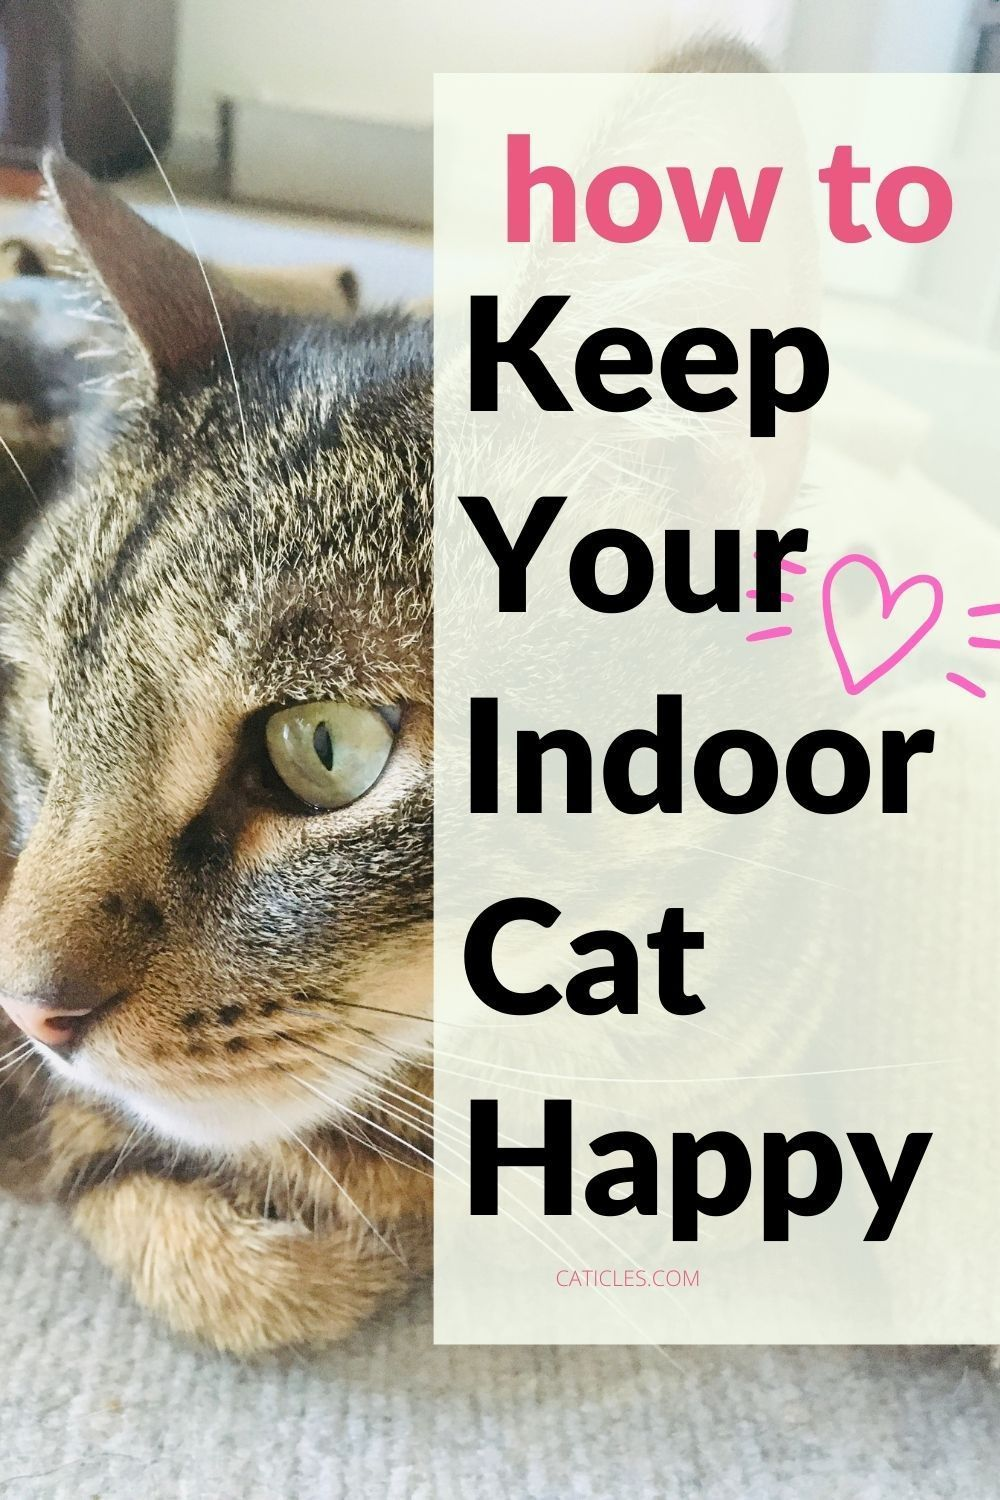 Caticles Mewsletter Free Indoor Cat Happiness Resources In 2020 Indoor Cat Cats Cat Parenting